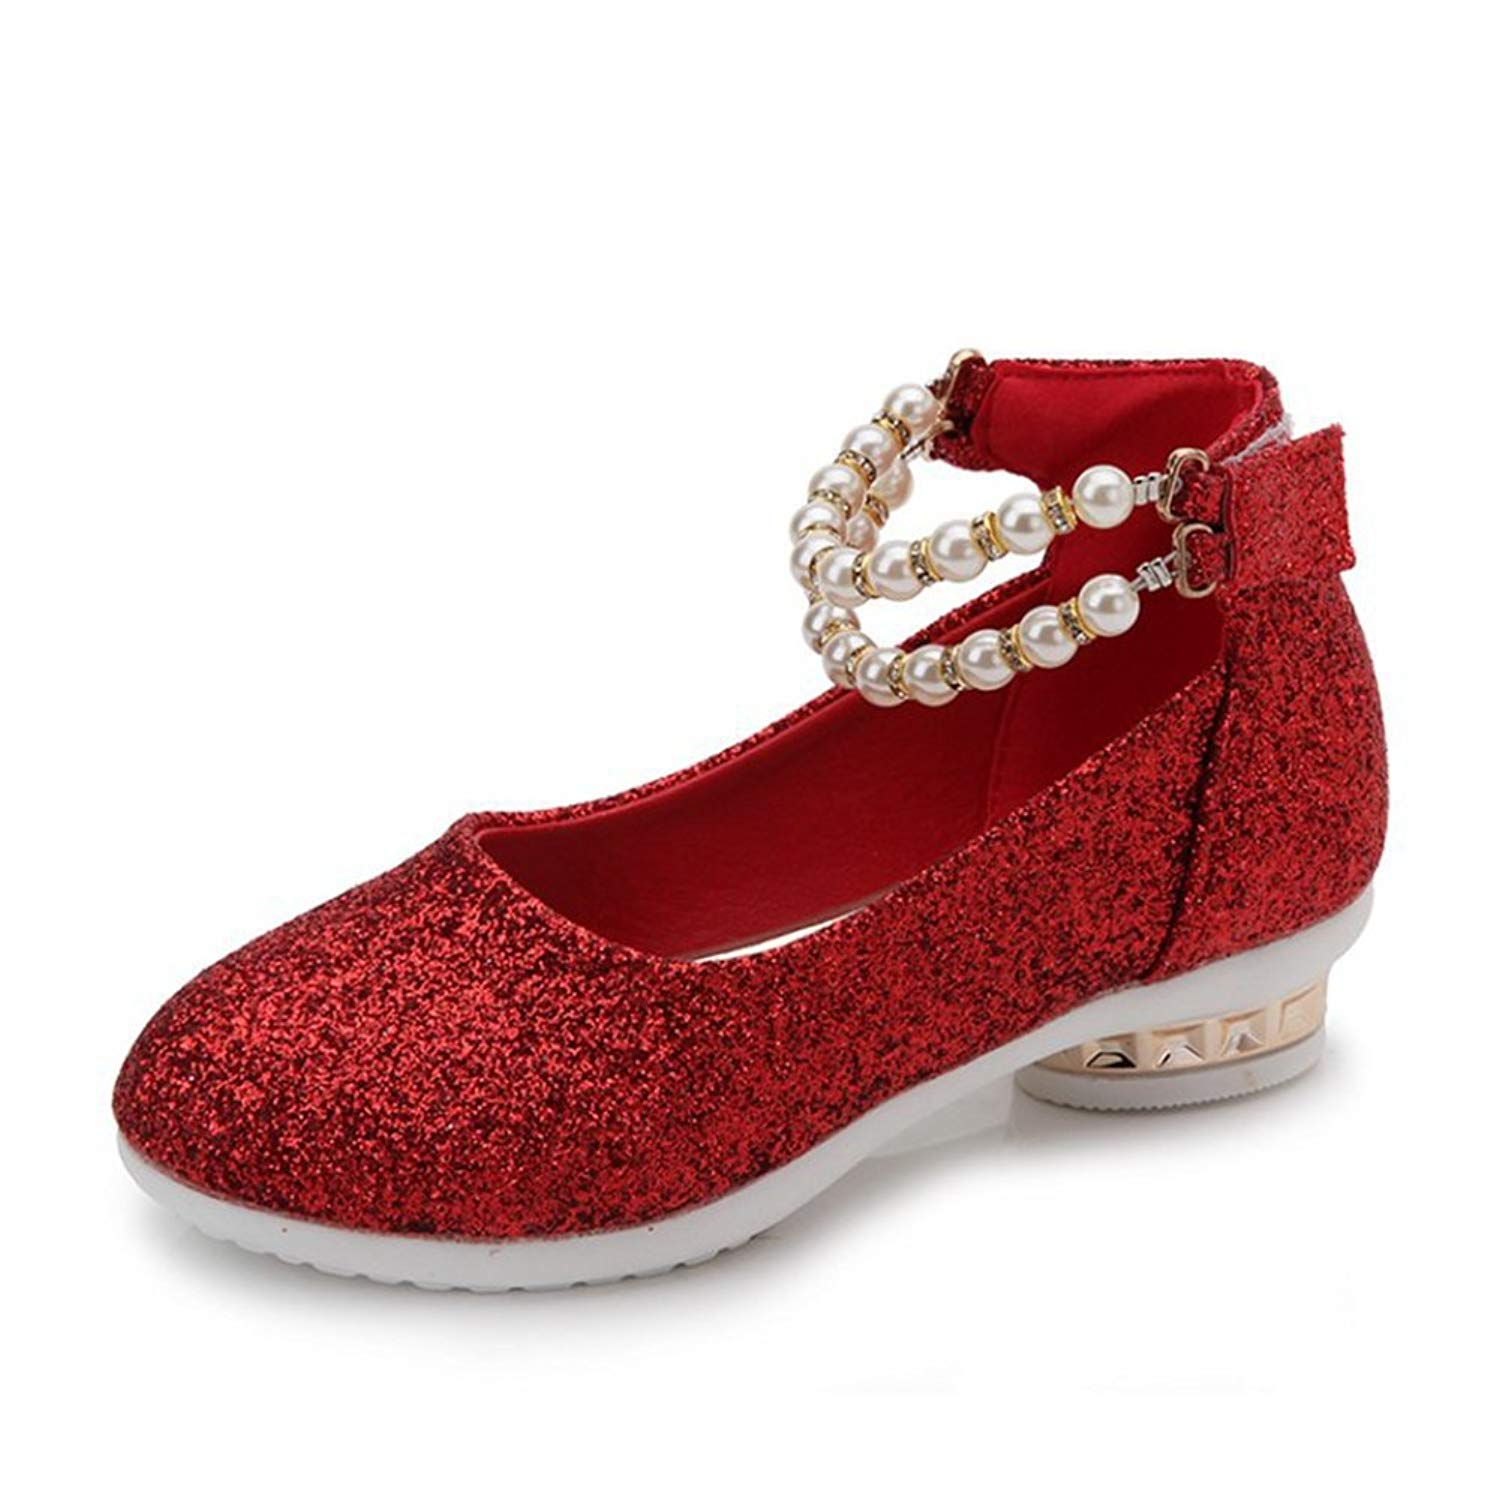 F-OXMY Little Girls Adorable Sparkle Mary Jane Bow Low Heels Princess Dress Ballet Shoes Strap